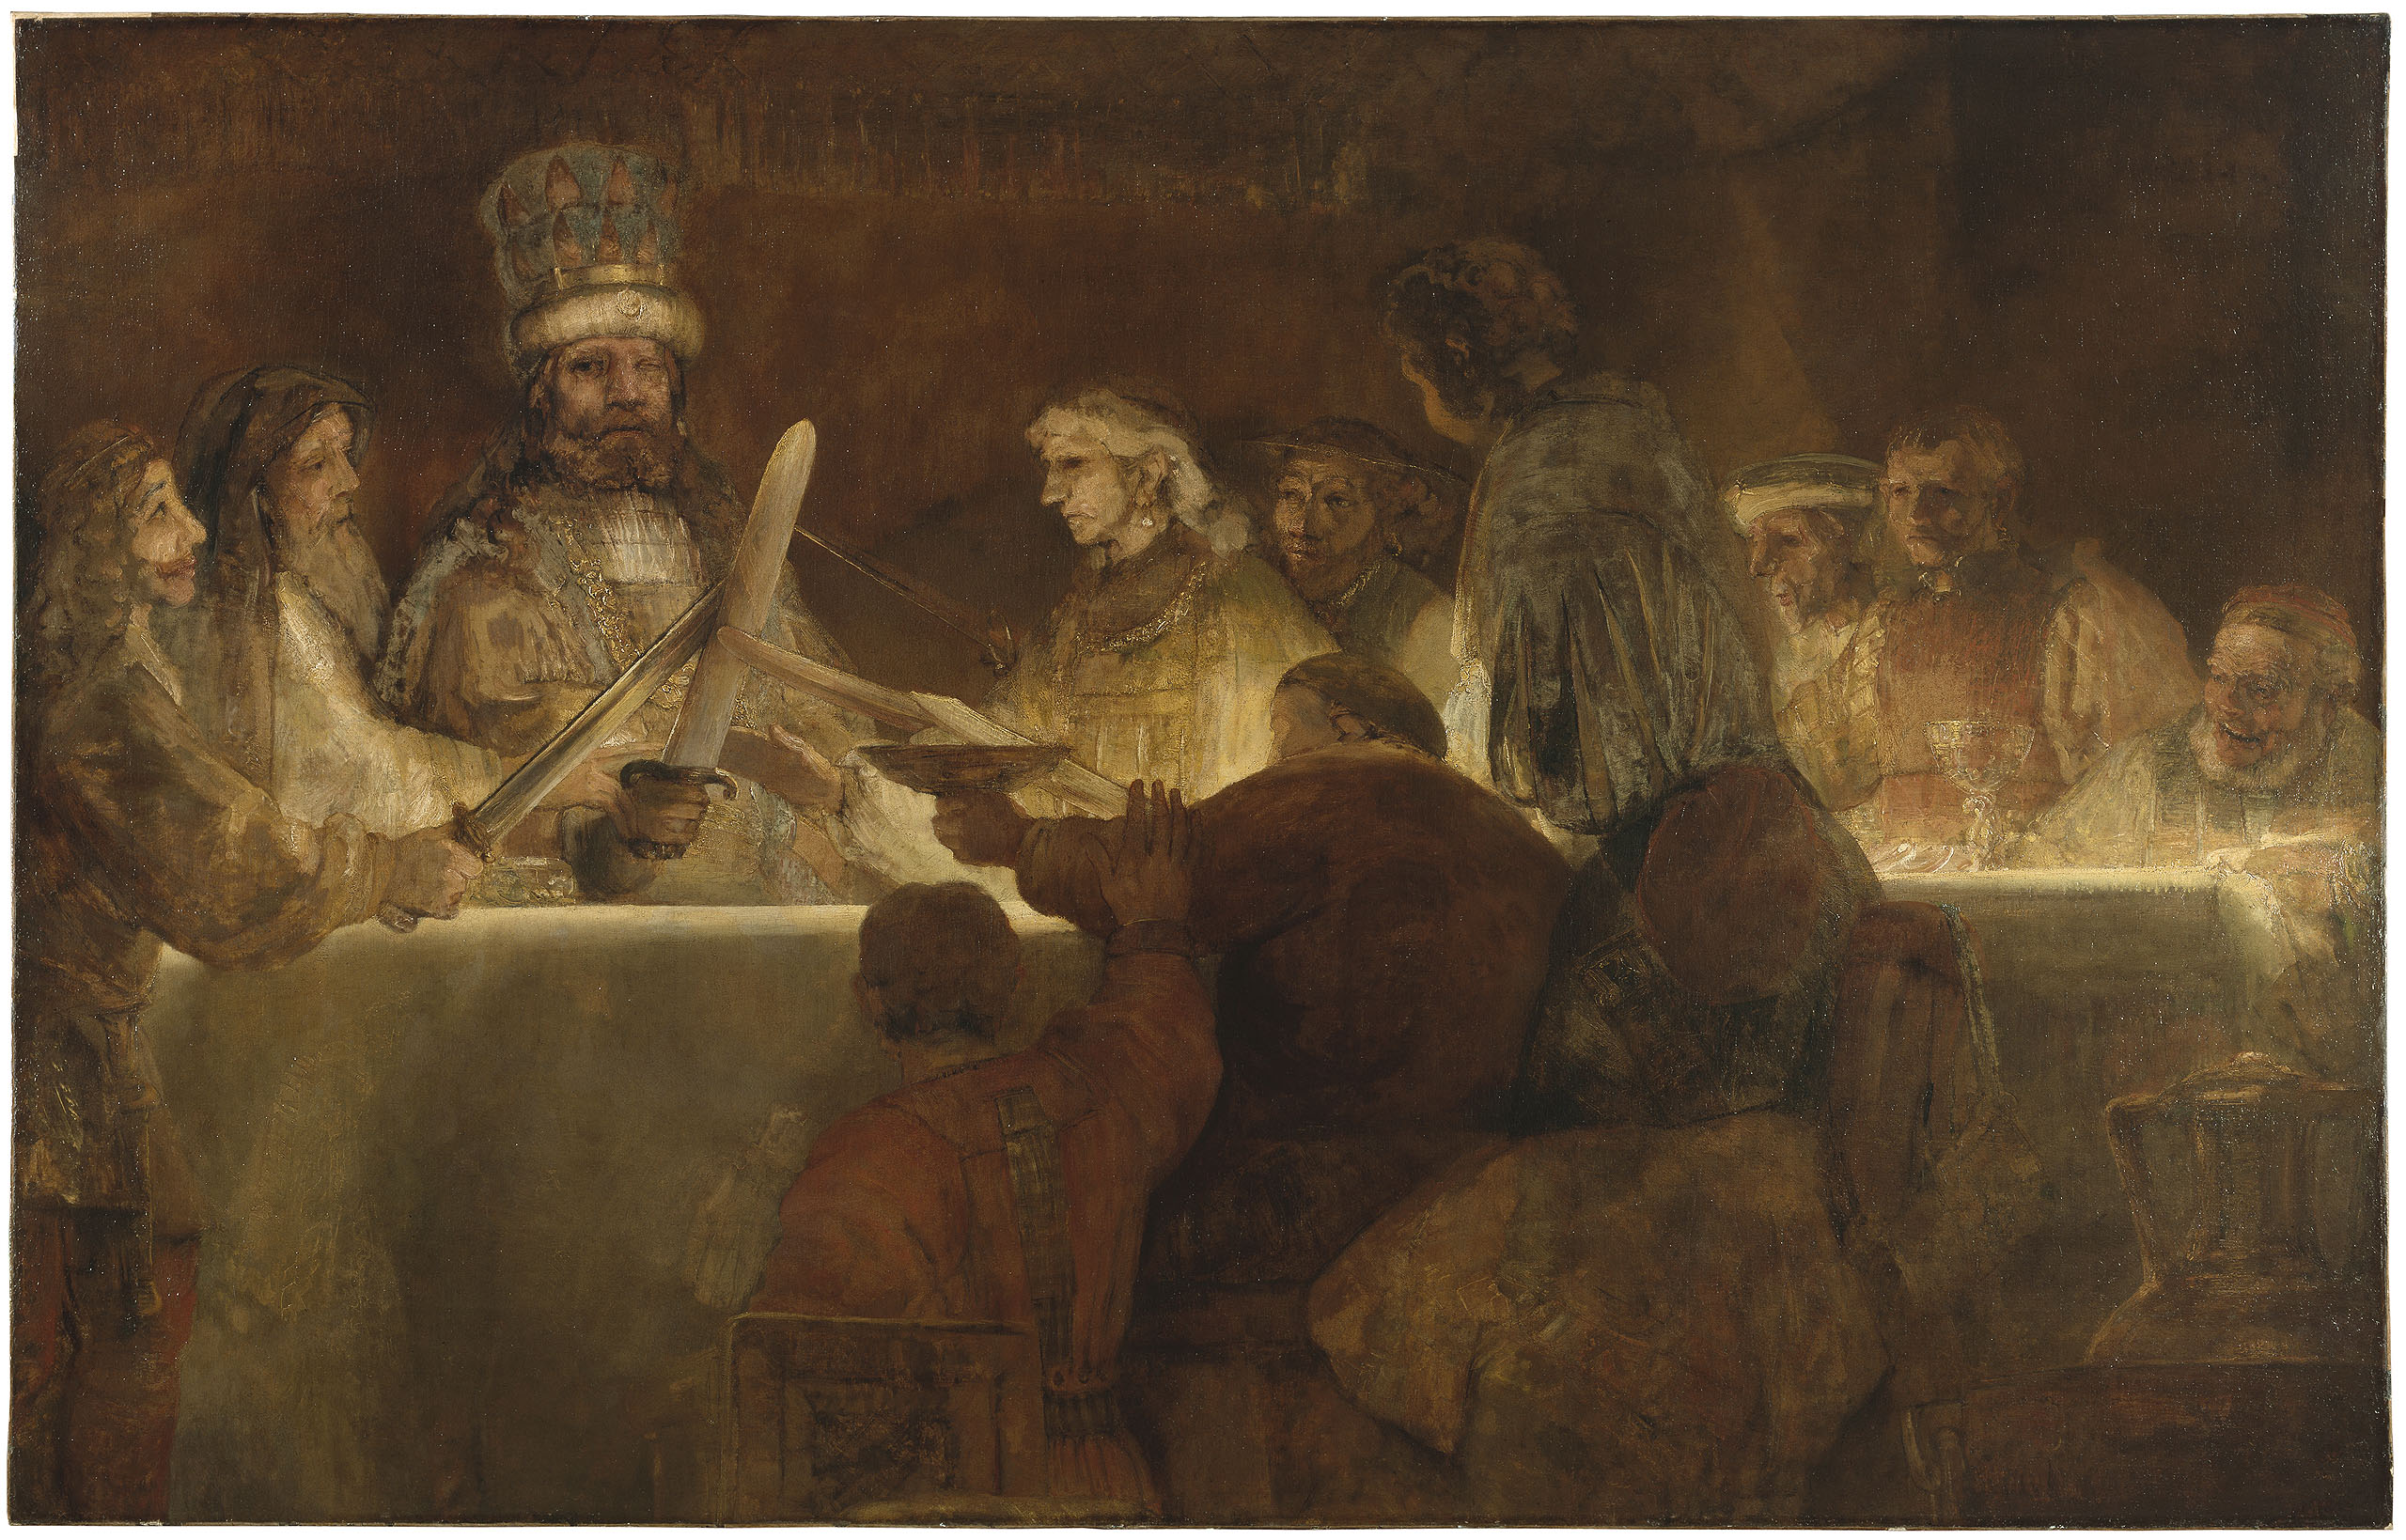 Fig. 4. Rembrandt van Rijn (1606-1669), <em>The Conspiracy of the Batavians under Claudius Civilis</em>, 1661-62 (inv. no. NM 578)